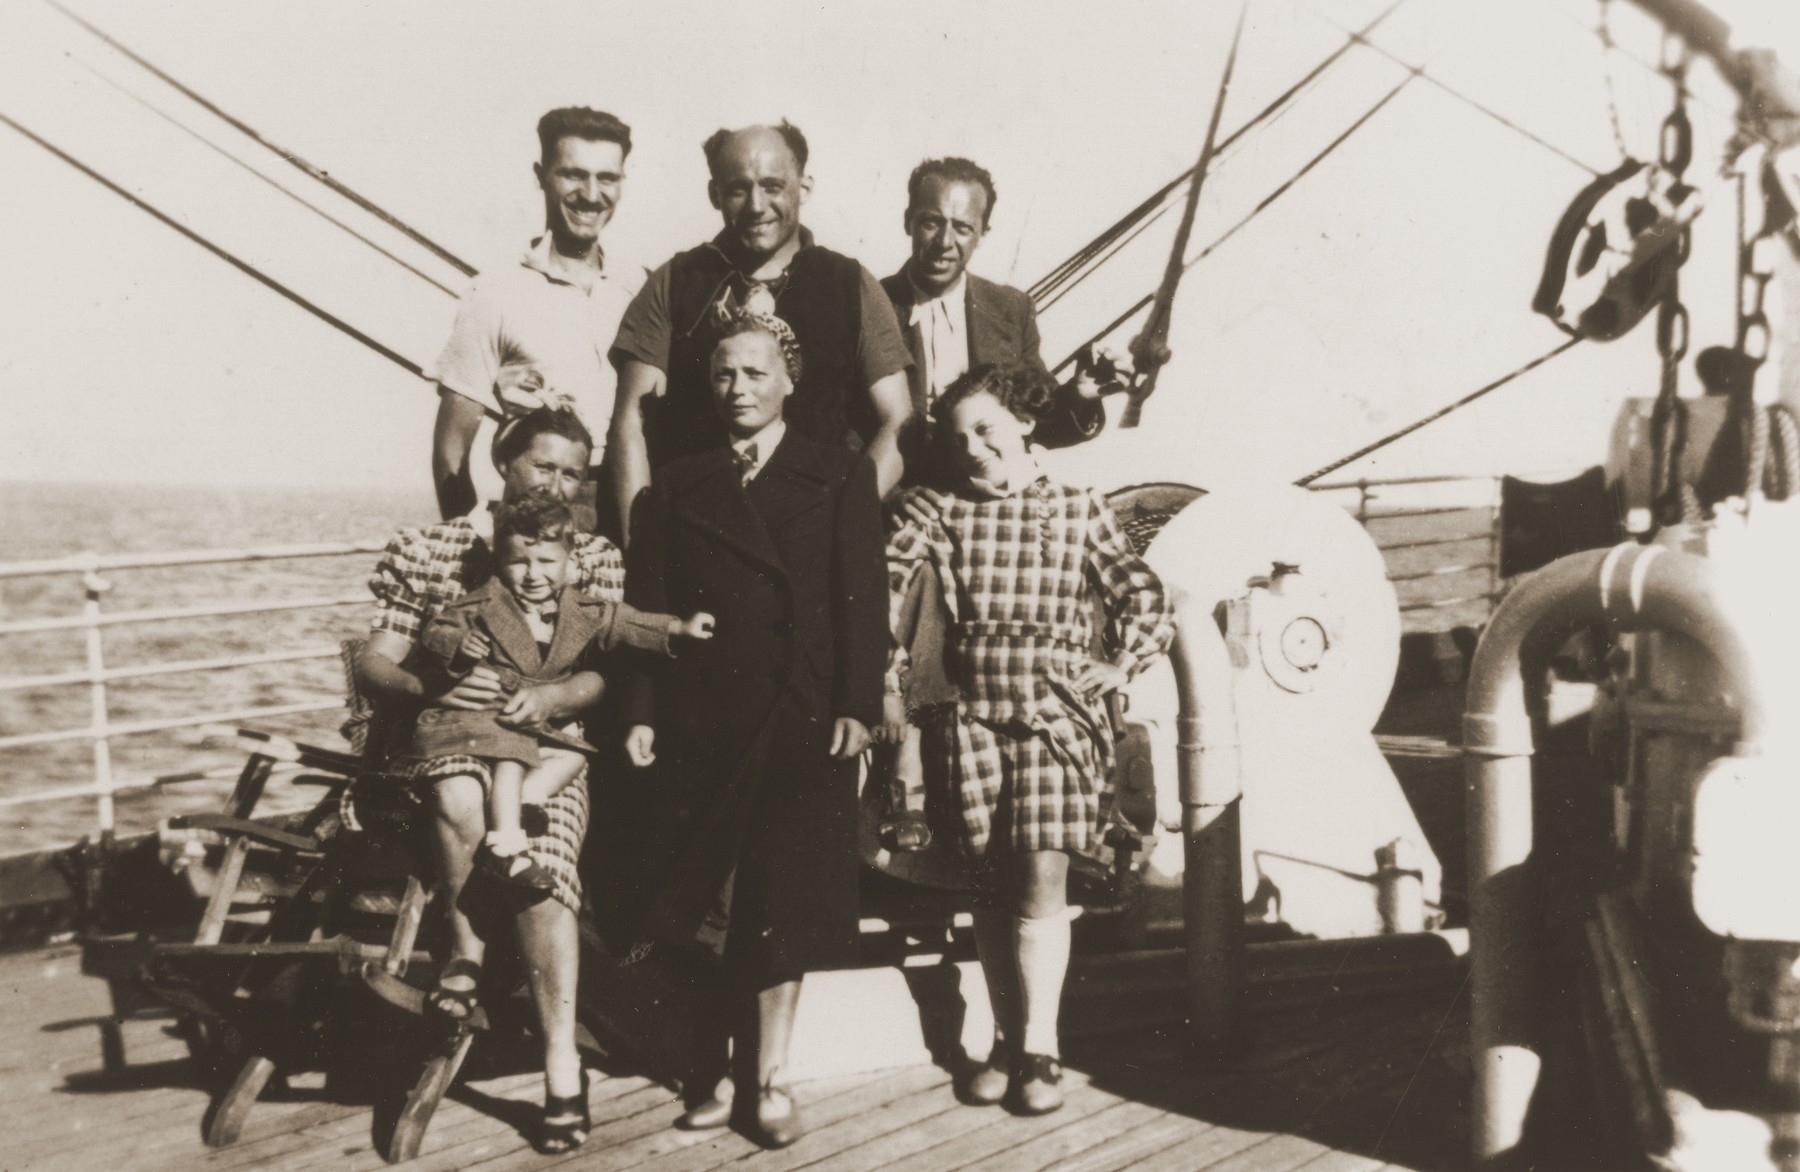 Austrian Jewish refugees pose on the deck of the SS Virgilio on their journey from Italy to Chile.  From Chile they traveled overland to their new homes in La Paz, Bolivia.  Among those pictured are members of the Reis, Rubinstein, and Kessler families.